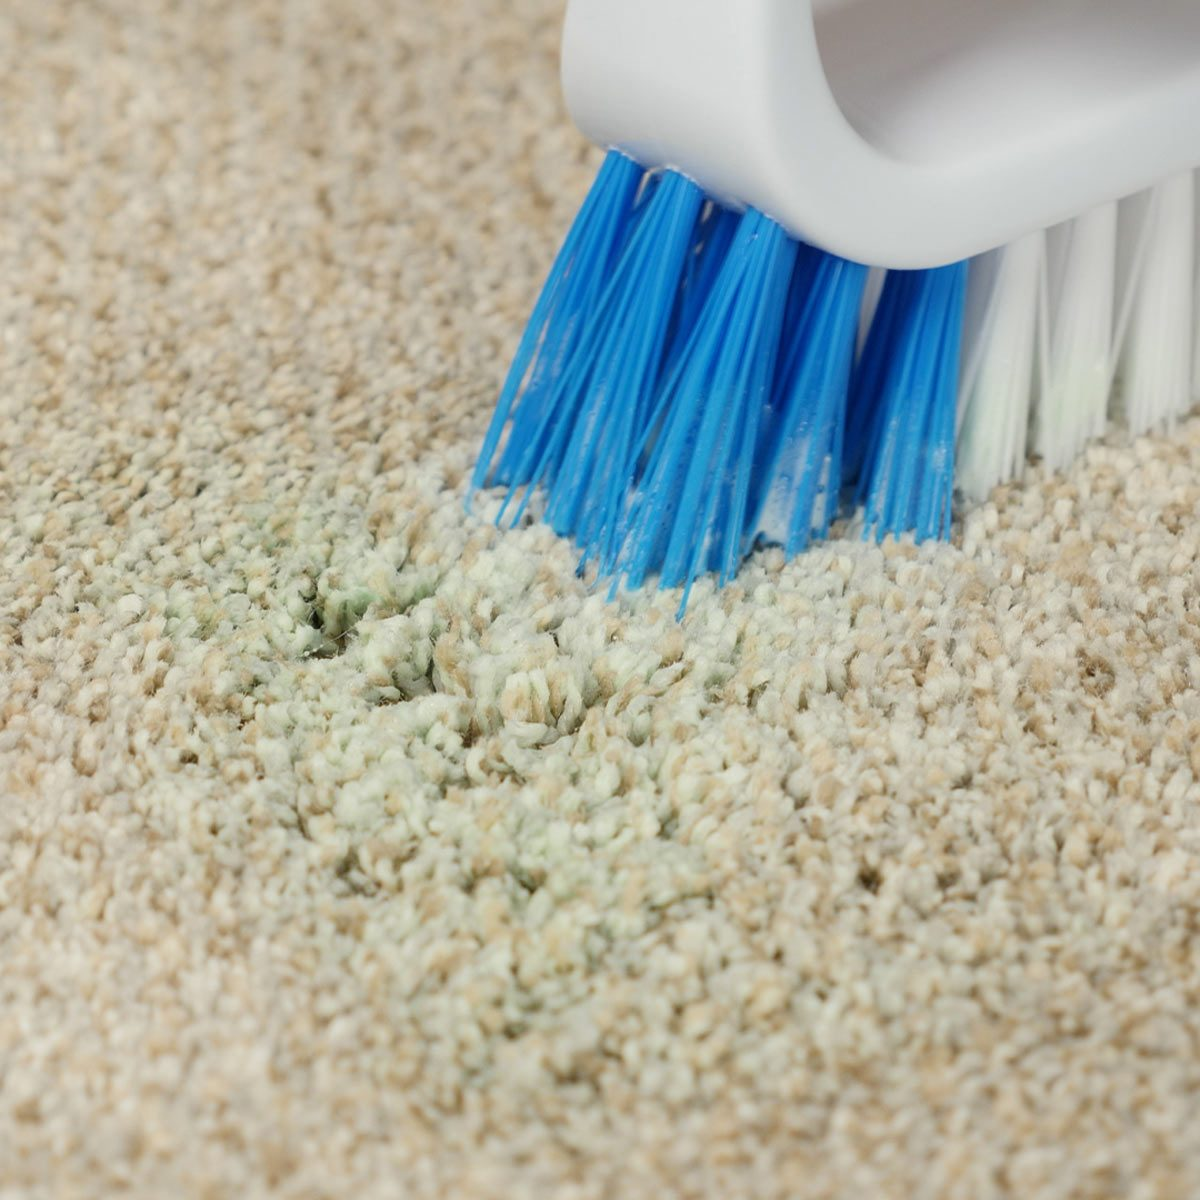 Scrubbing slime stain out of carpet